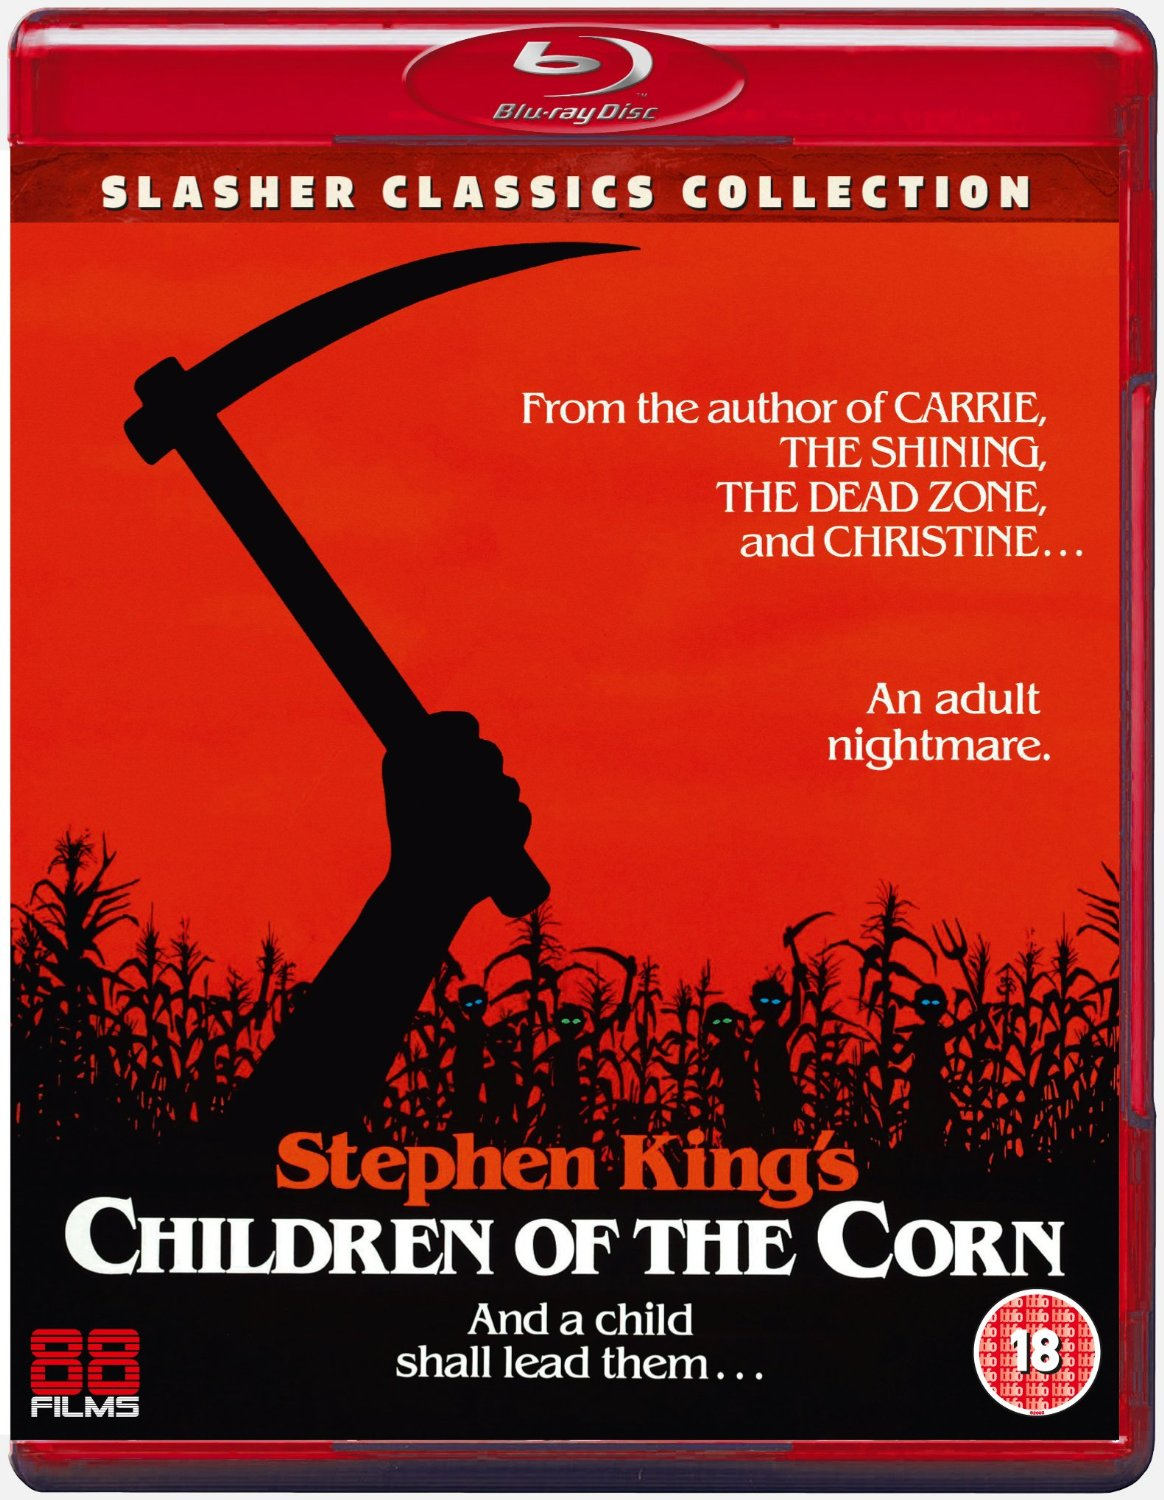 Children Of The Corn Blu-ray review: dare you go back?